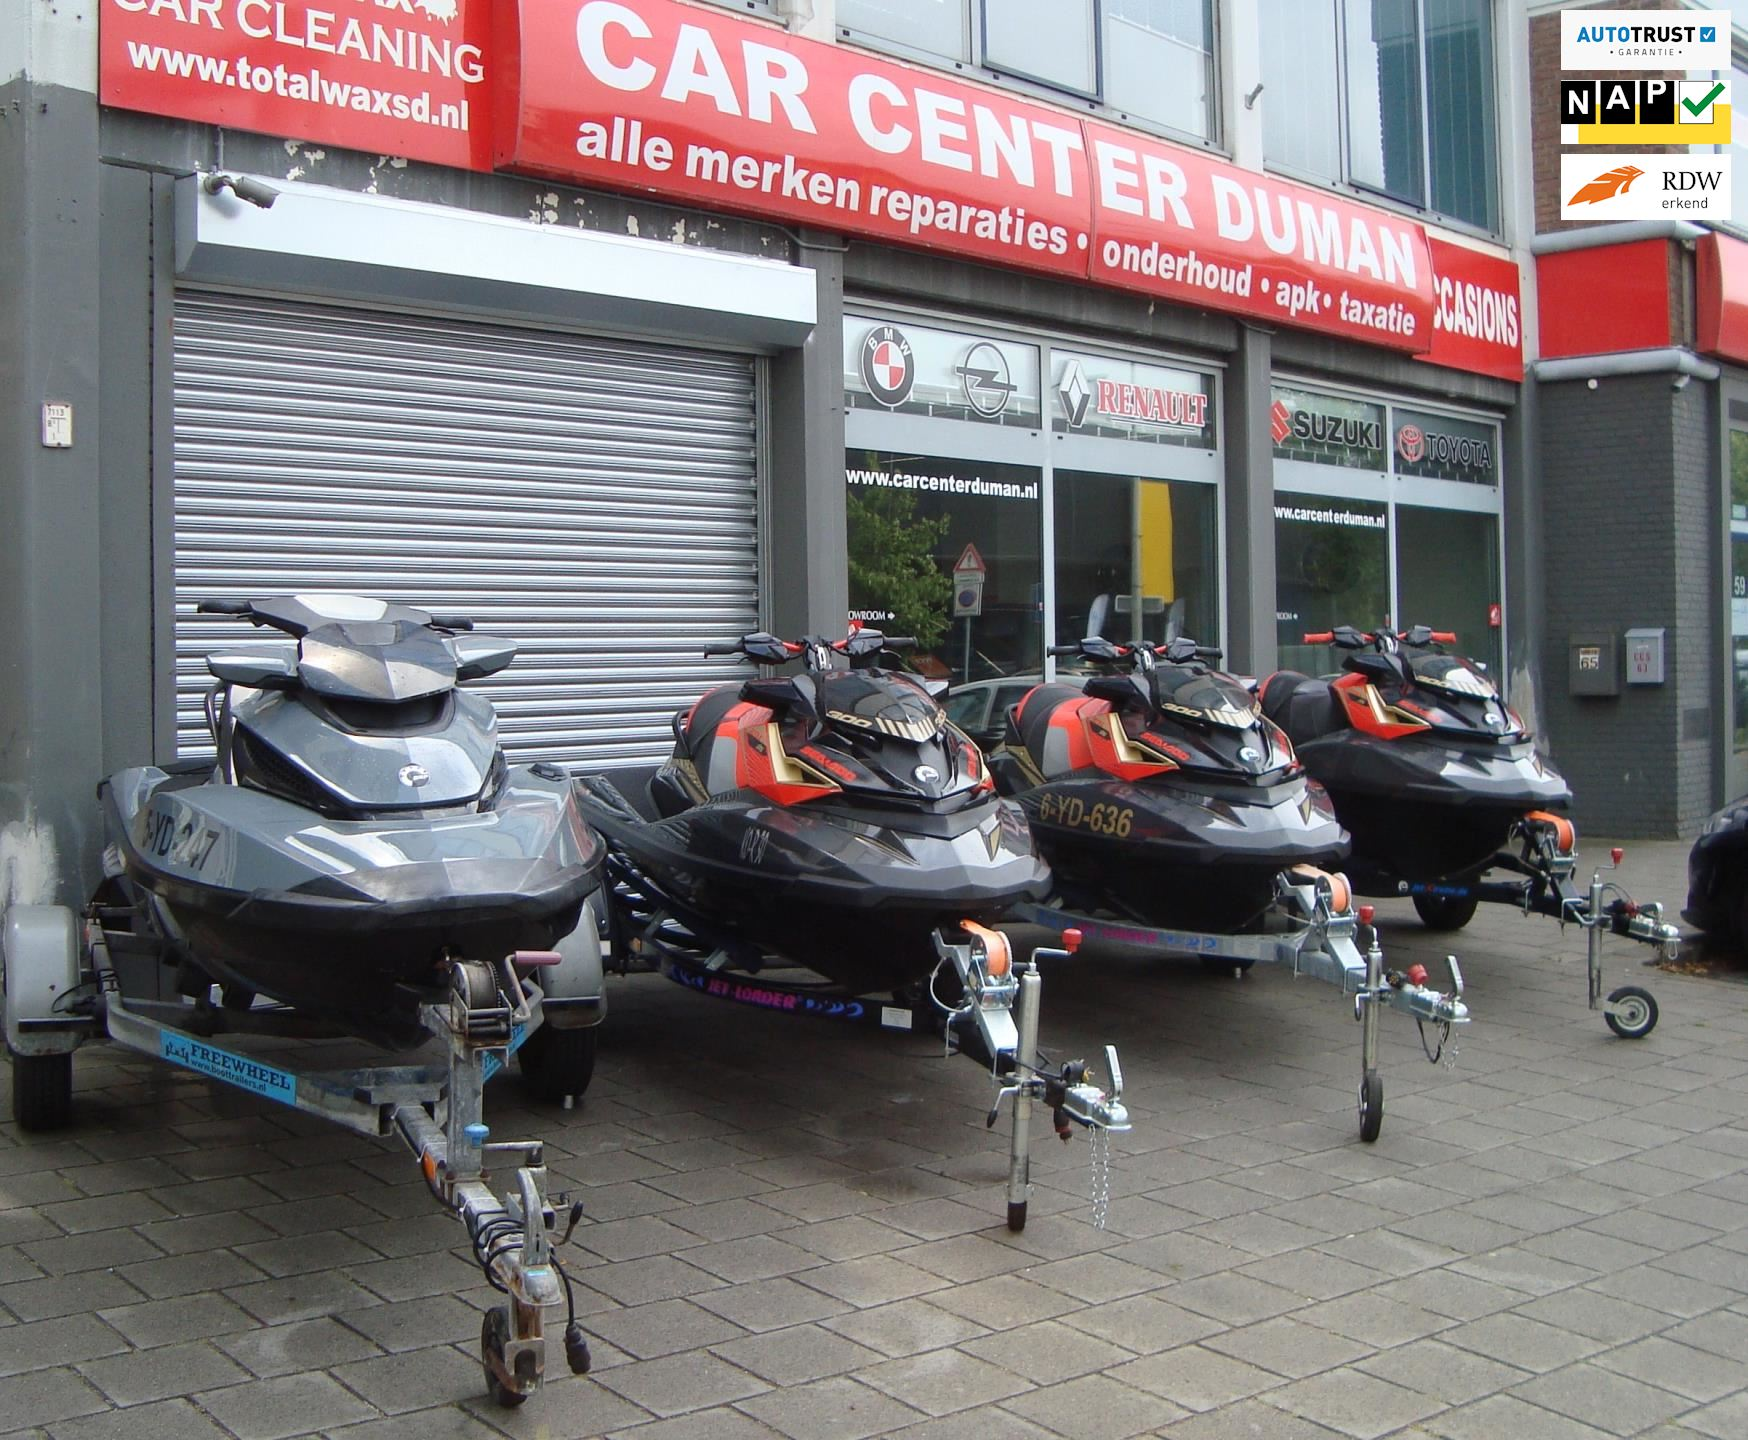 Seadoo RXP X 300 RS occasion - Car Center S. Duman